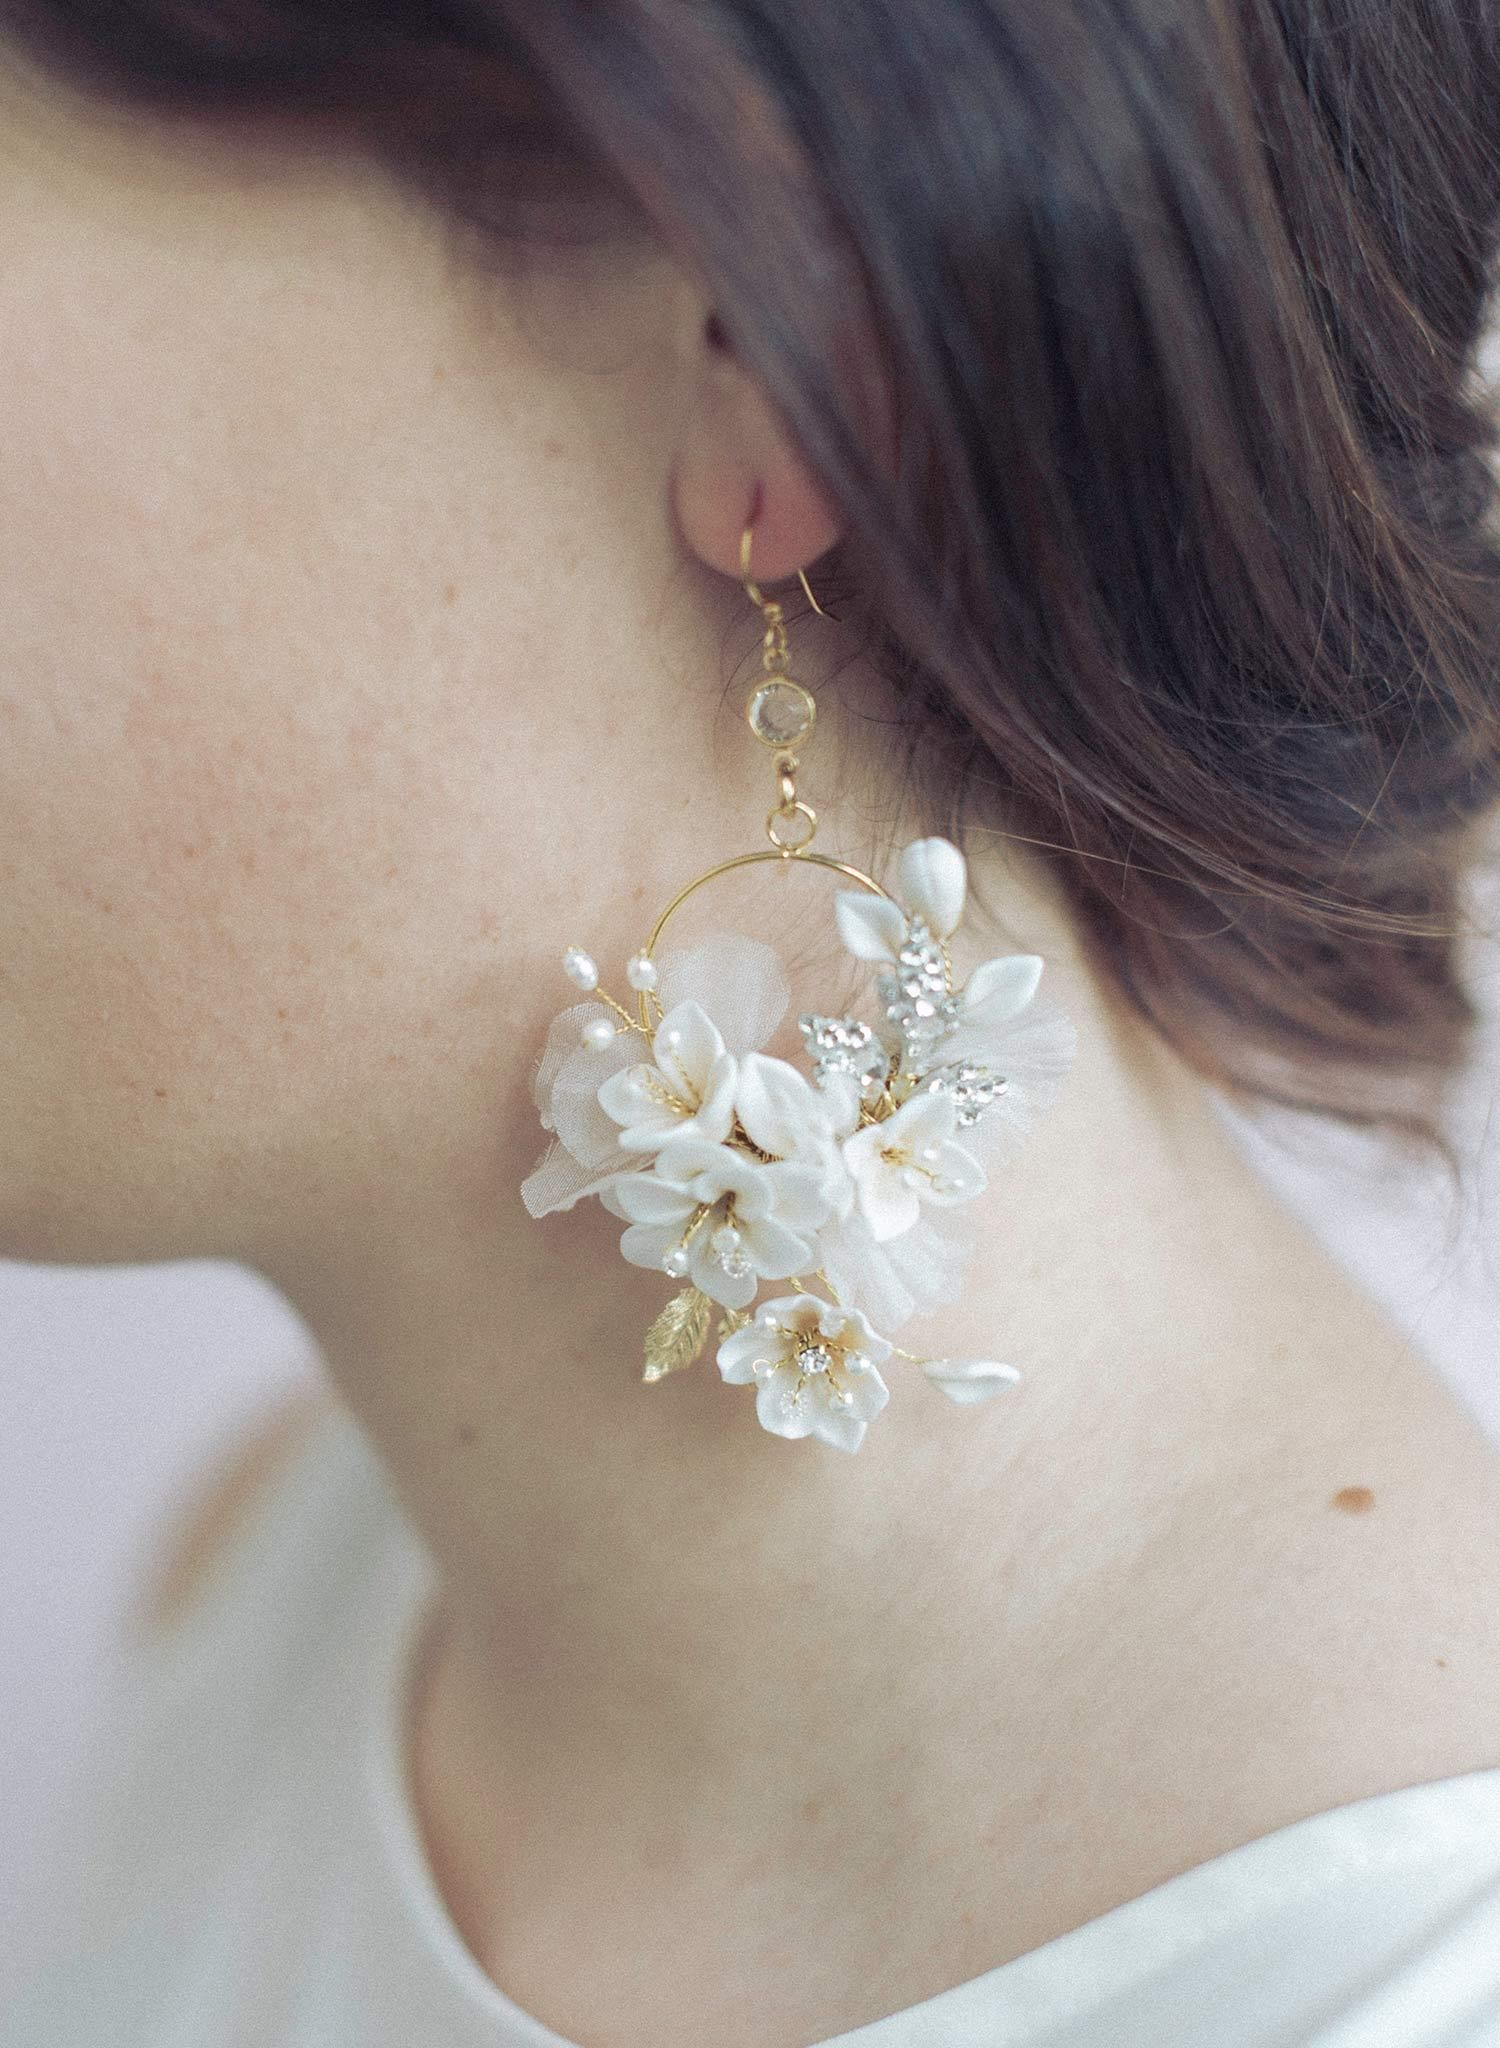 ed06f14fb66f6c Clay flower circle earrings - Creamy blossom and silk flower earrings -  Style #951 | Twigs & Honey ®, LLC